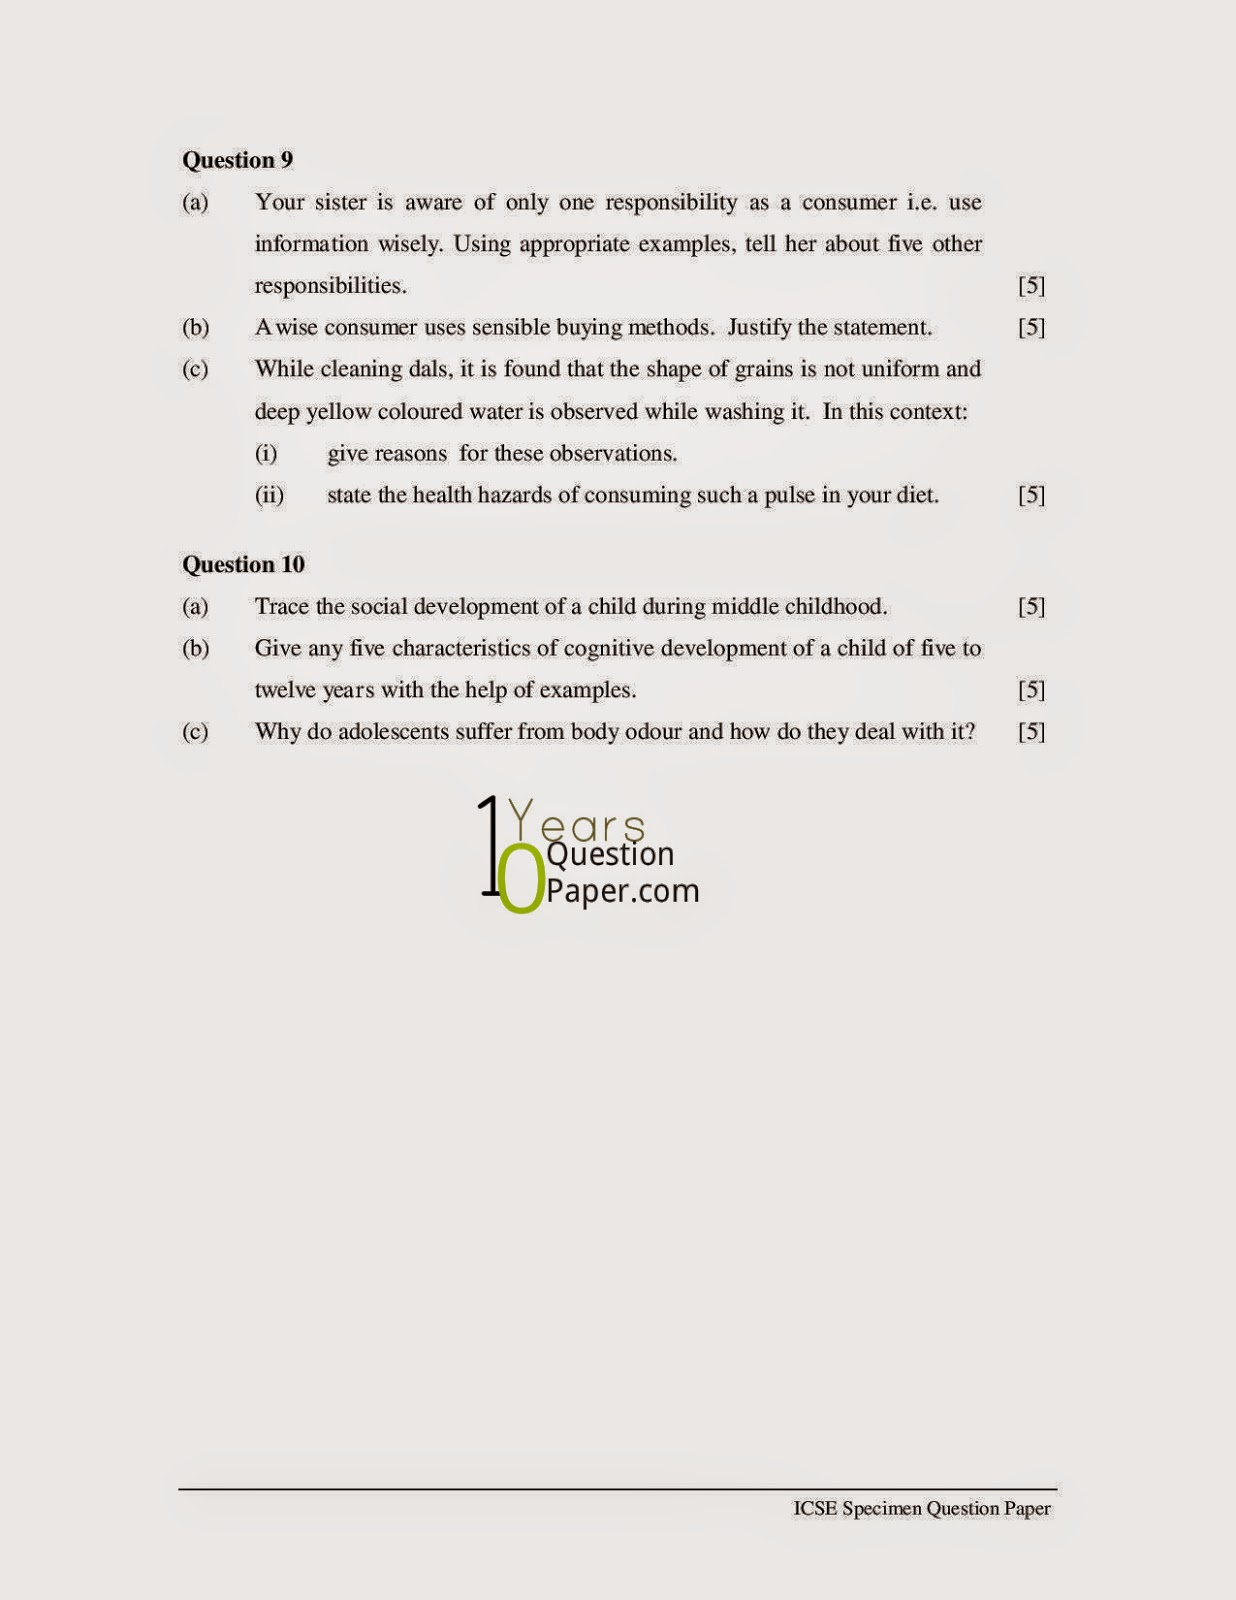 icse 2015 class 10th Home Science Specimen Board question paper